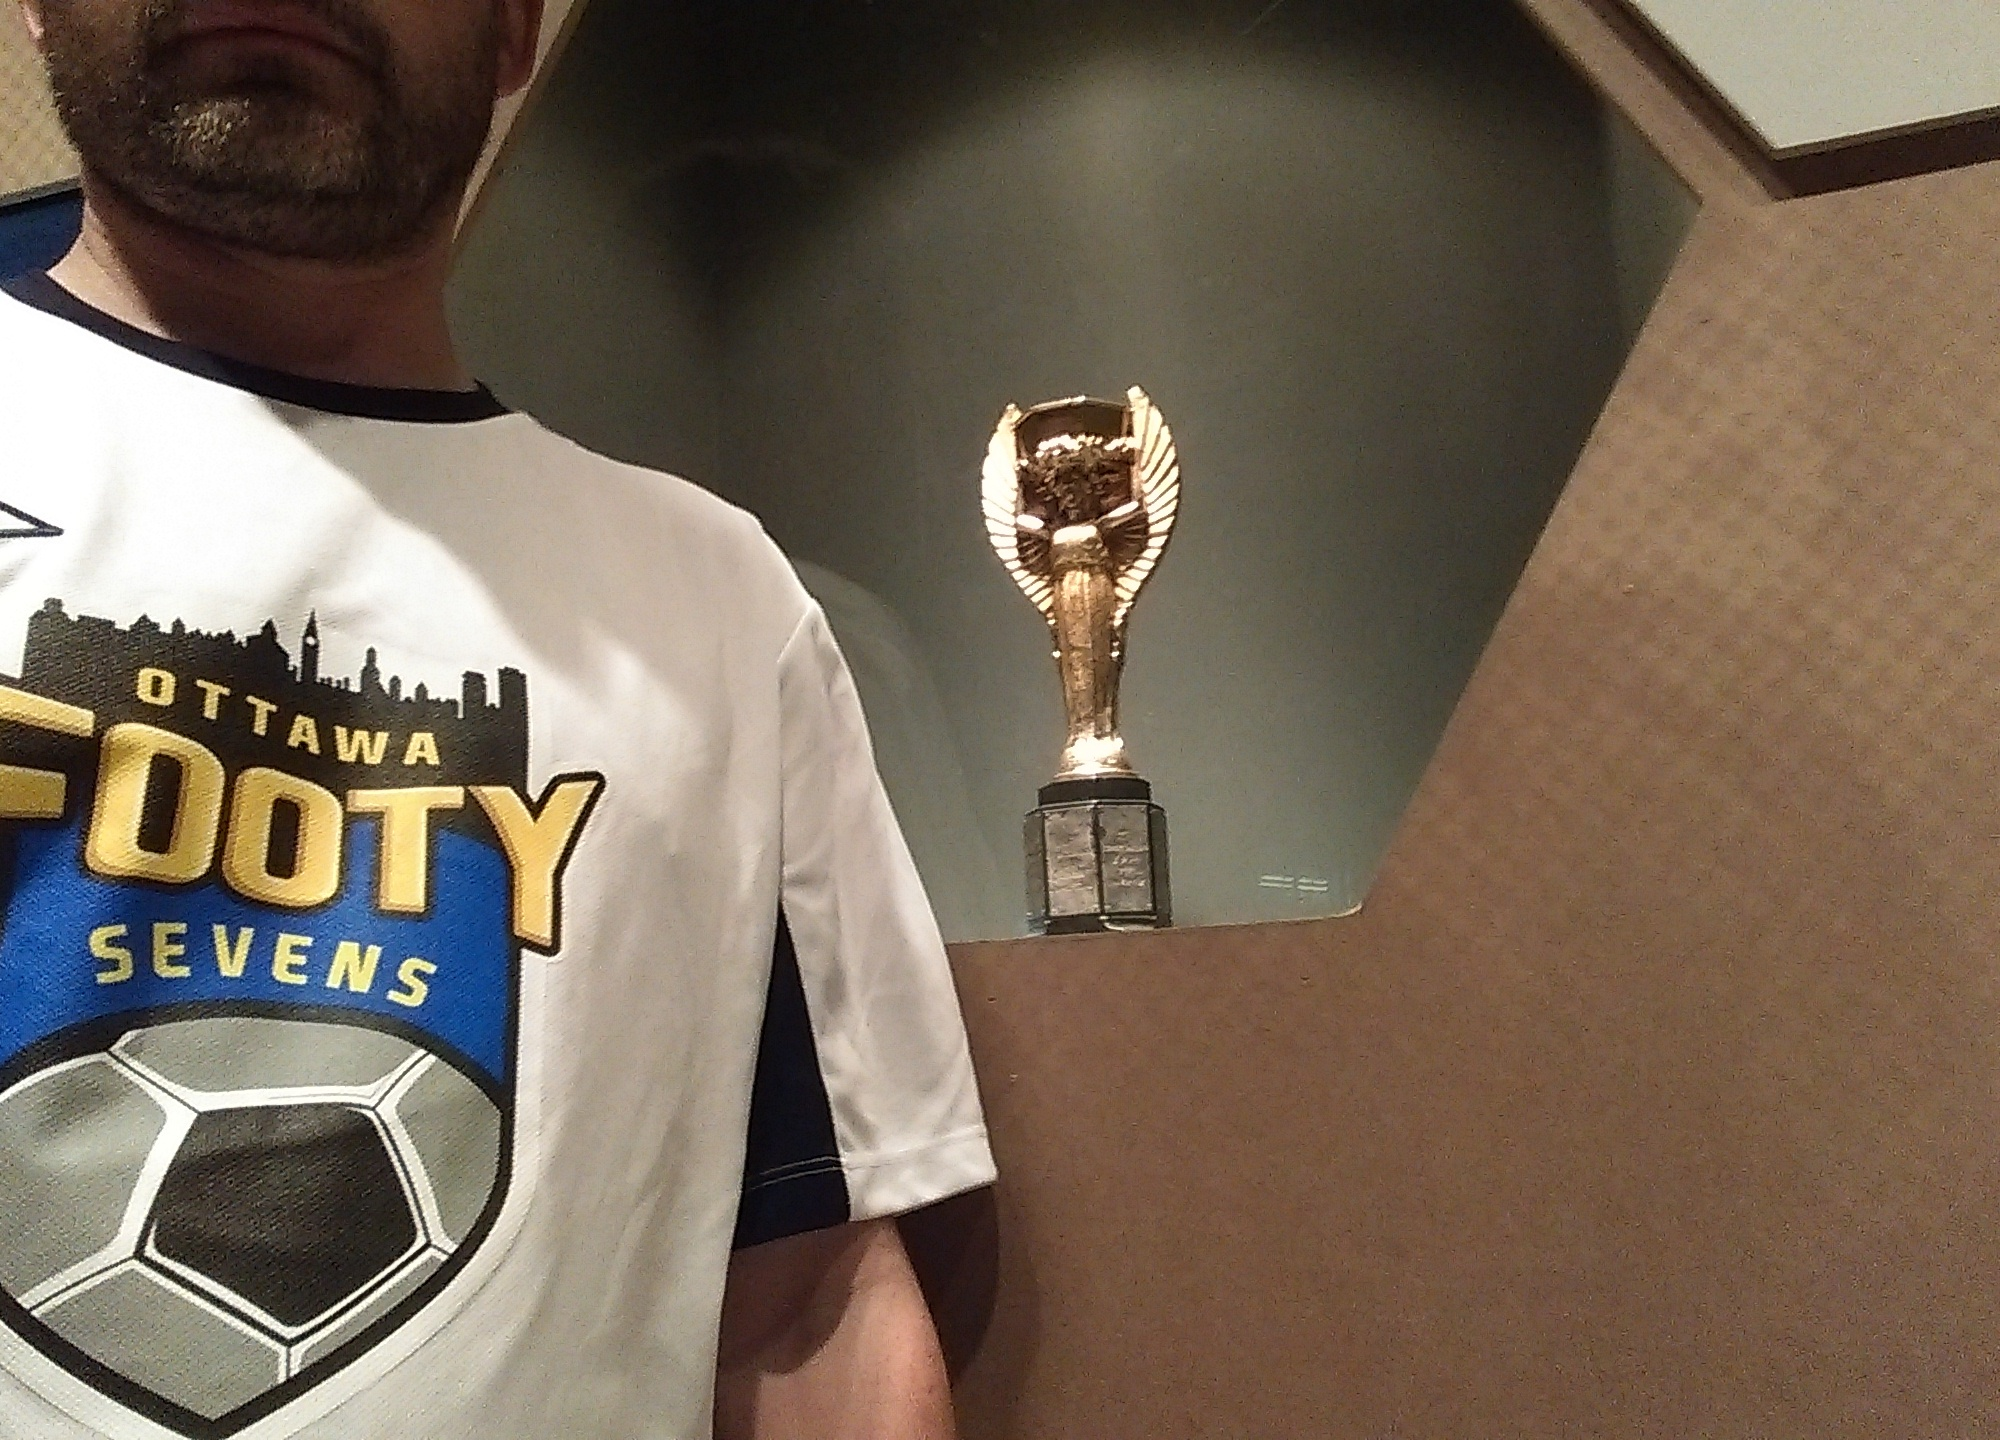 Footy Sevens with the Jules Rimet Trophy